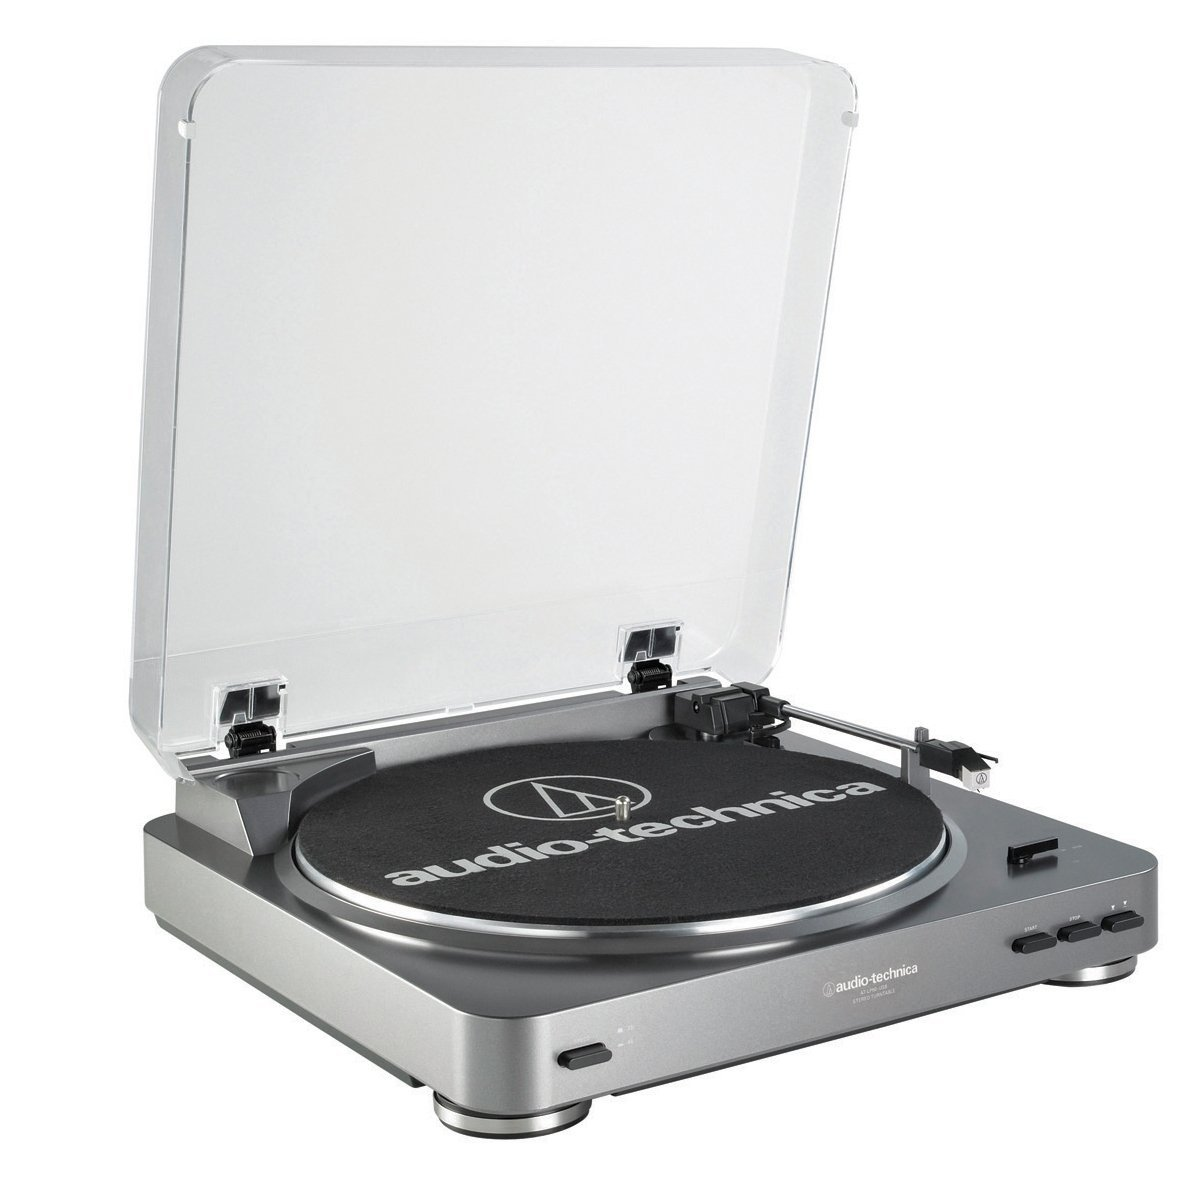 Audio-Technica-AT-LP60USB-Fully-Automatic-Belt-Driven-Turntable-with-USB-Port